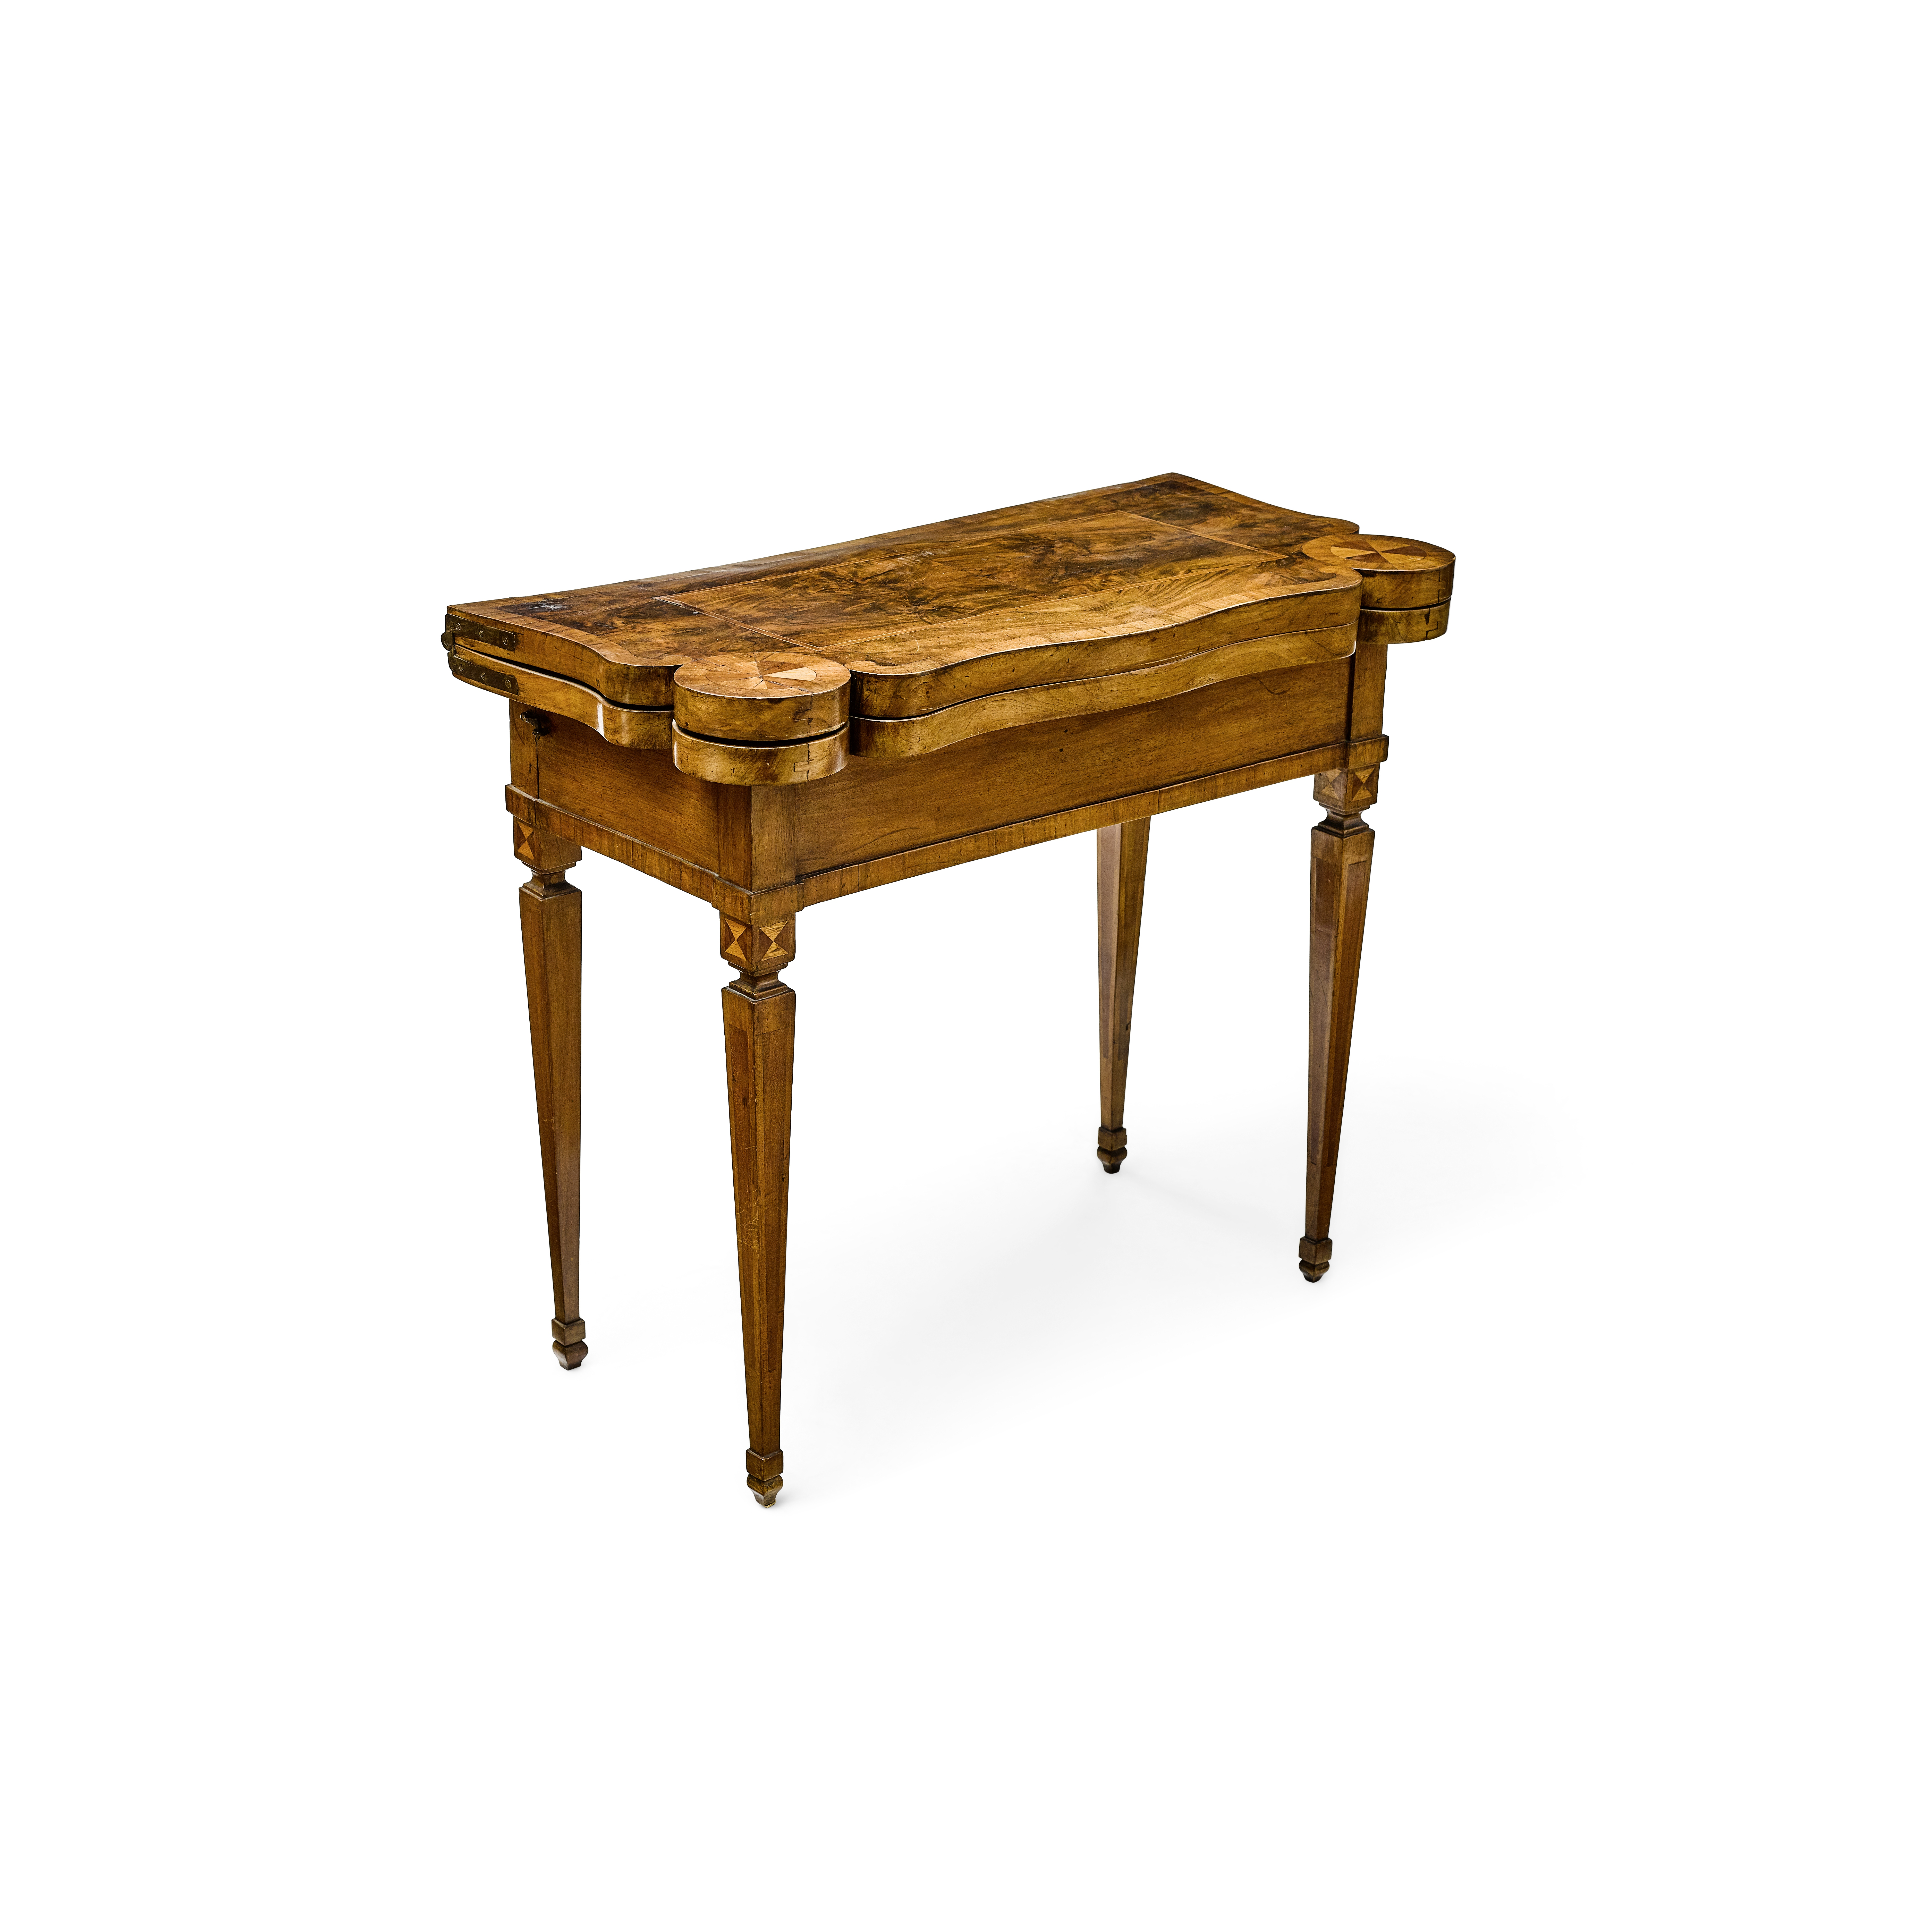 Lot 203 - A Neoclassical Parquetry and Walnut Games Table Possibly Swiss, fourth quarter 18th century